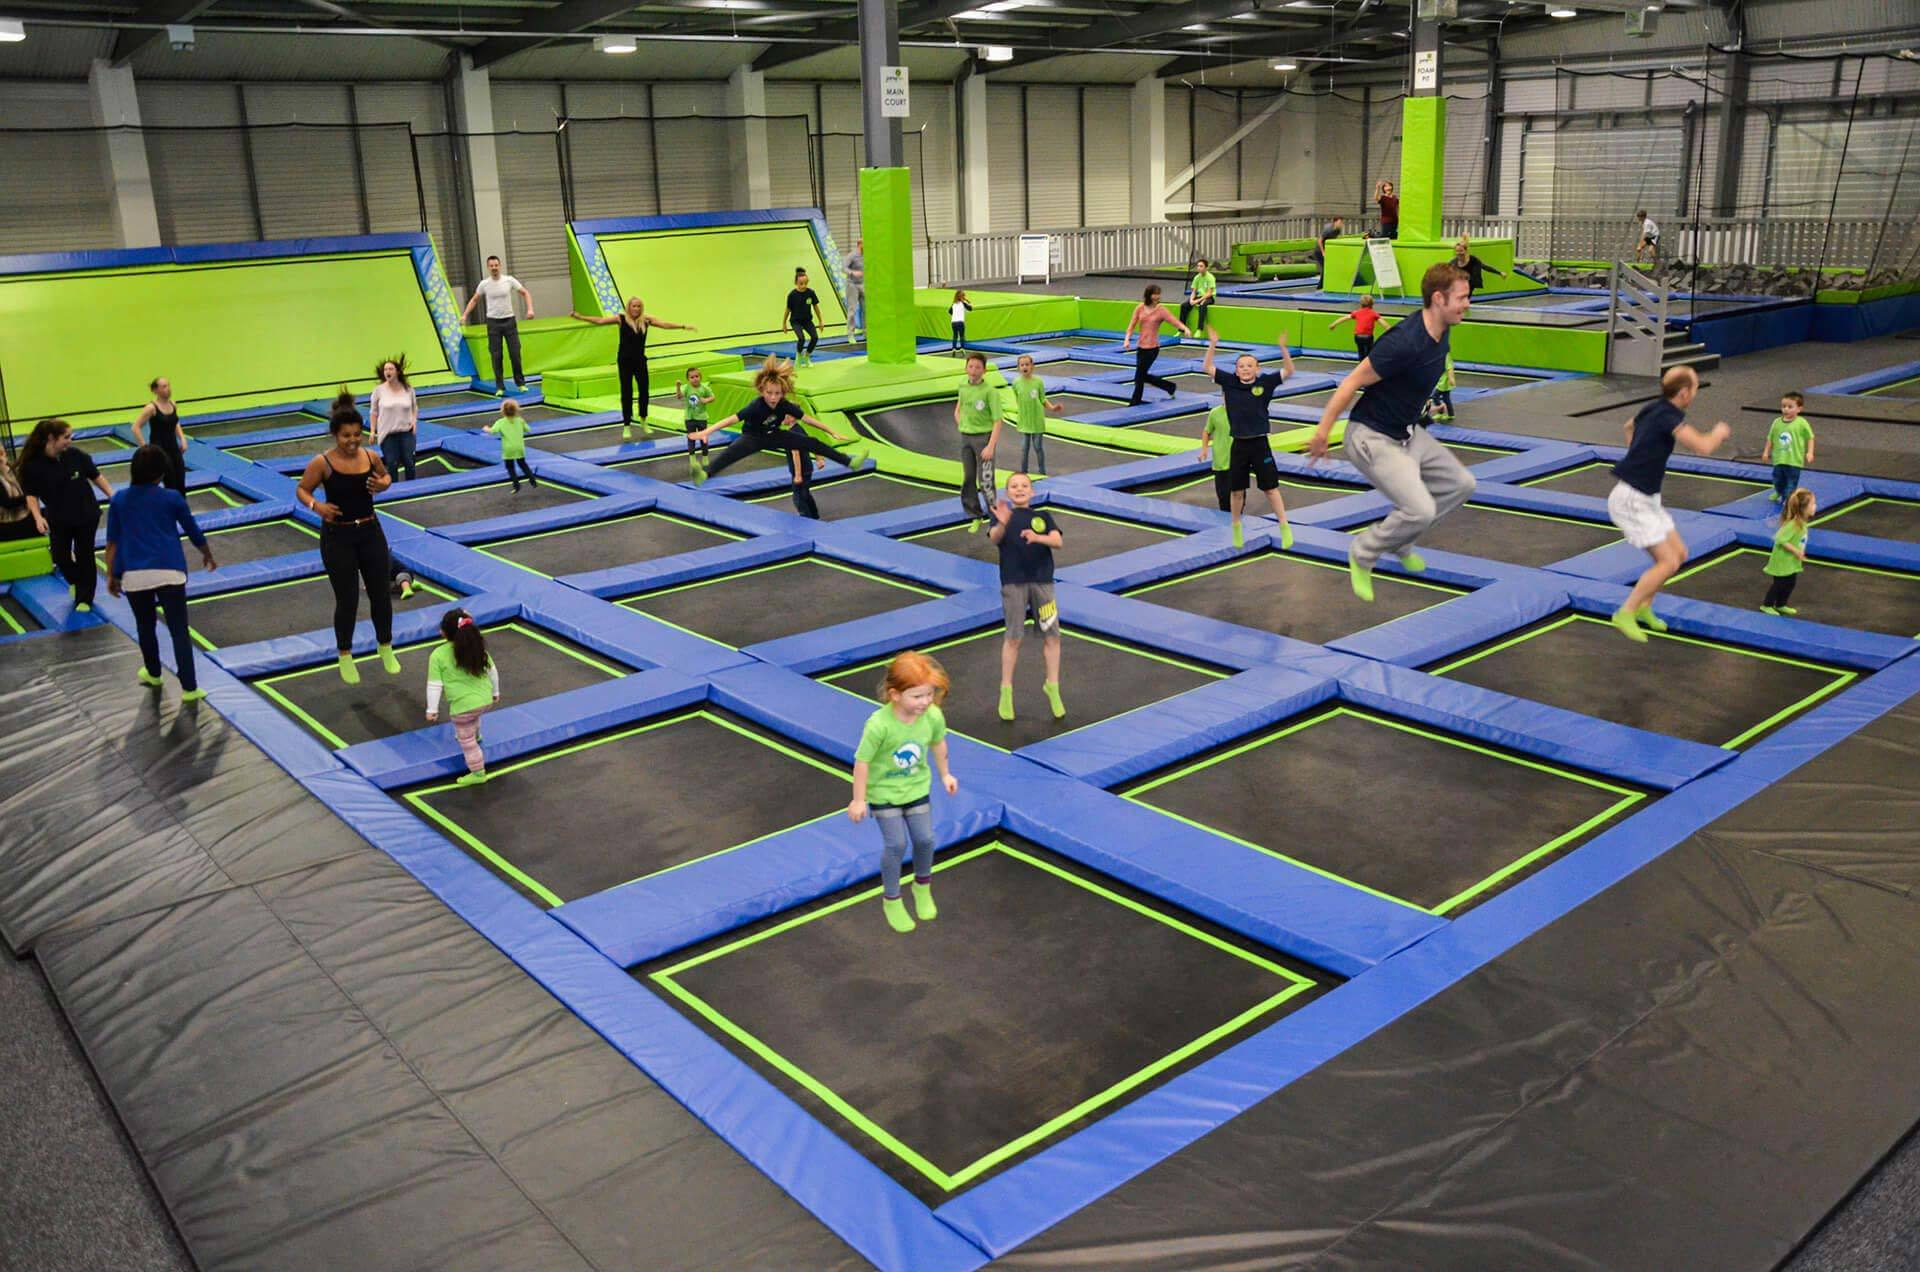 Plans were lodged to open Aberdeen's first trampoline park in Tullos in August.